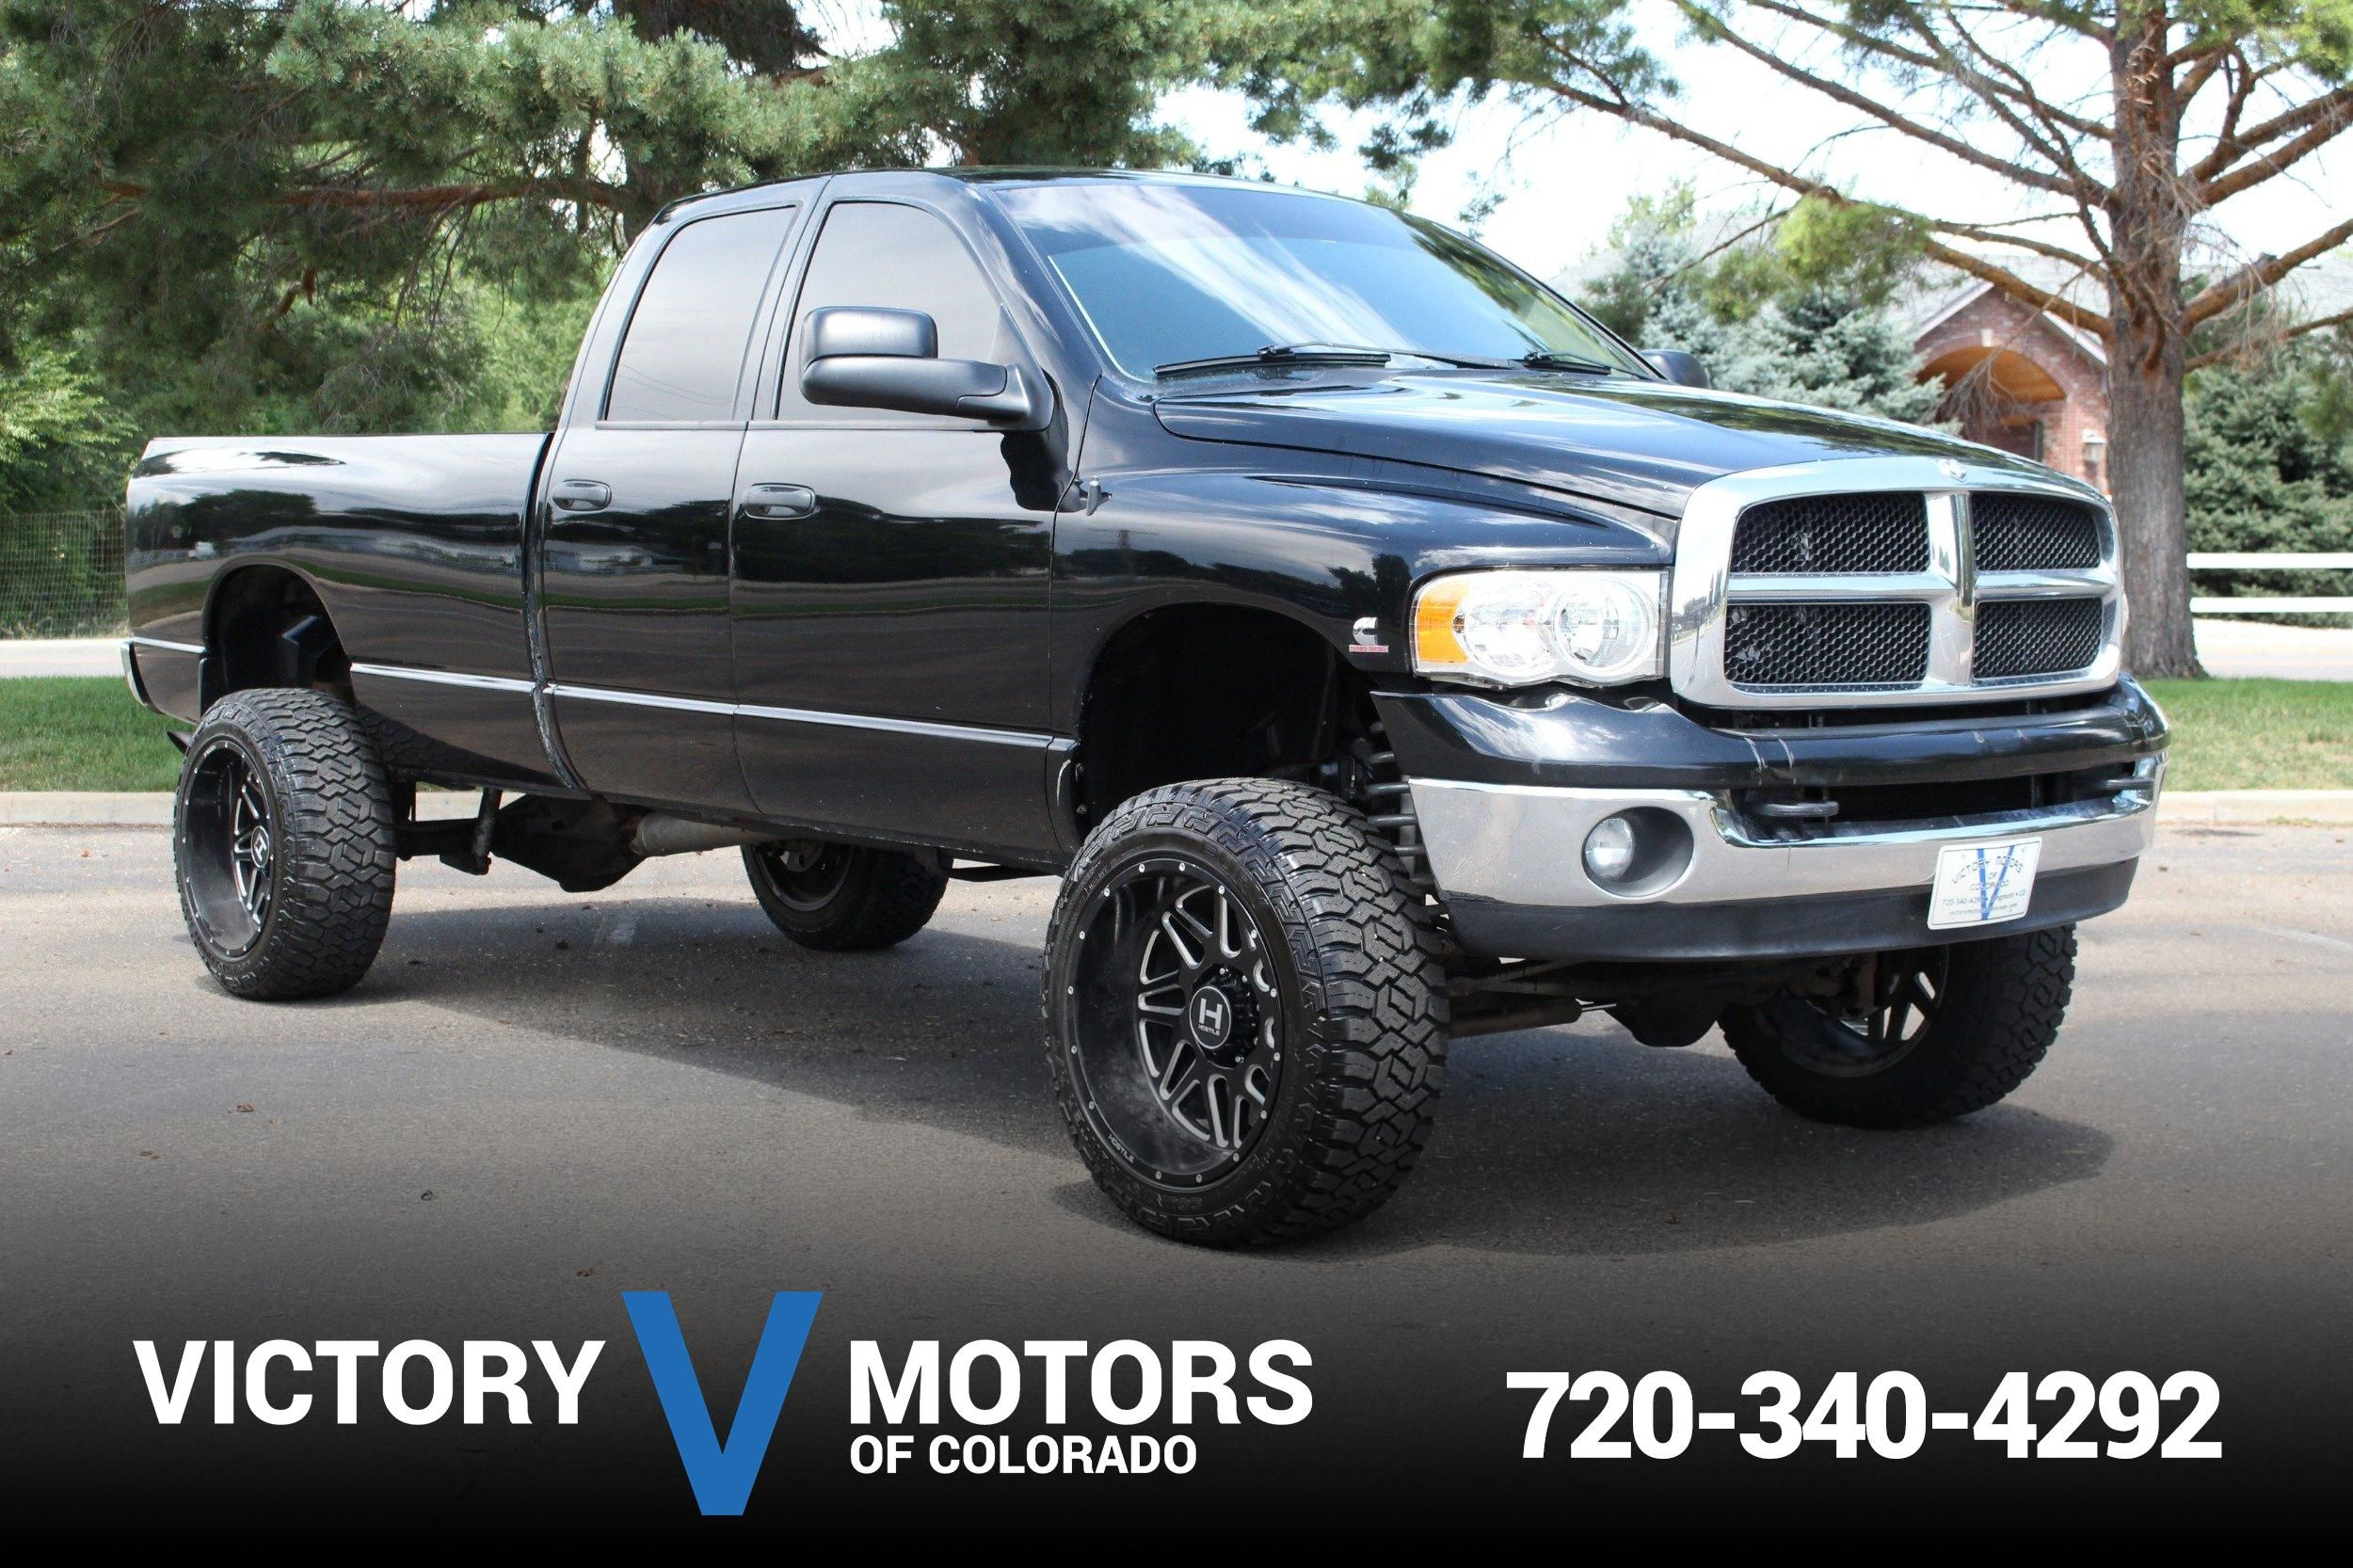 2003 Dodge Ram 2500 Slt Victory Motors Of Colorado